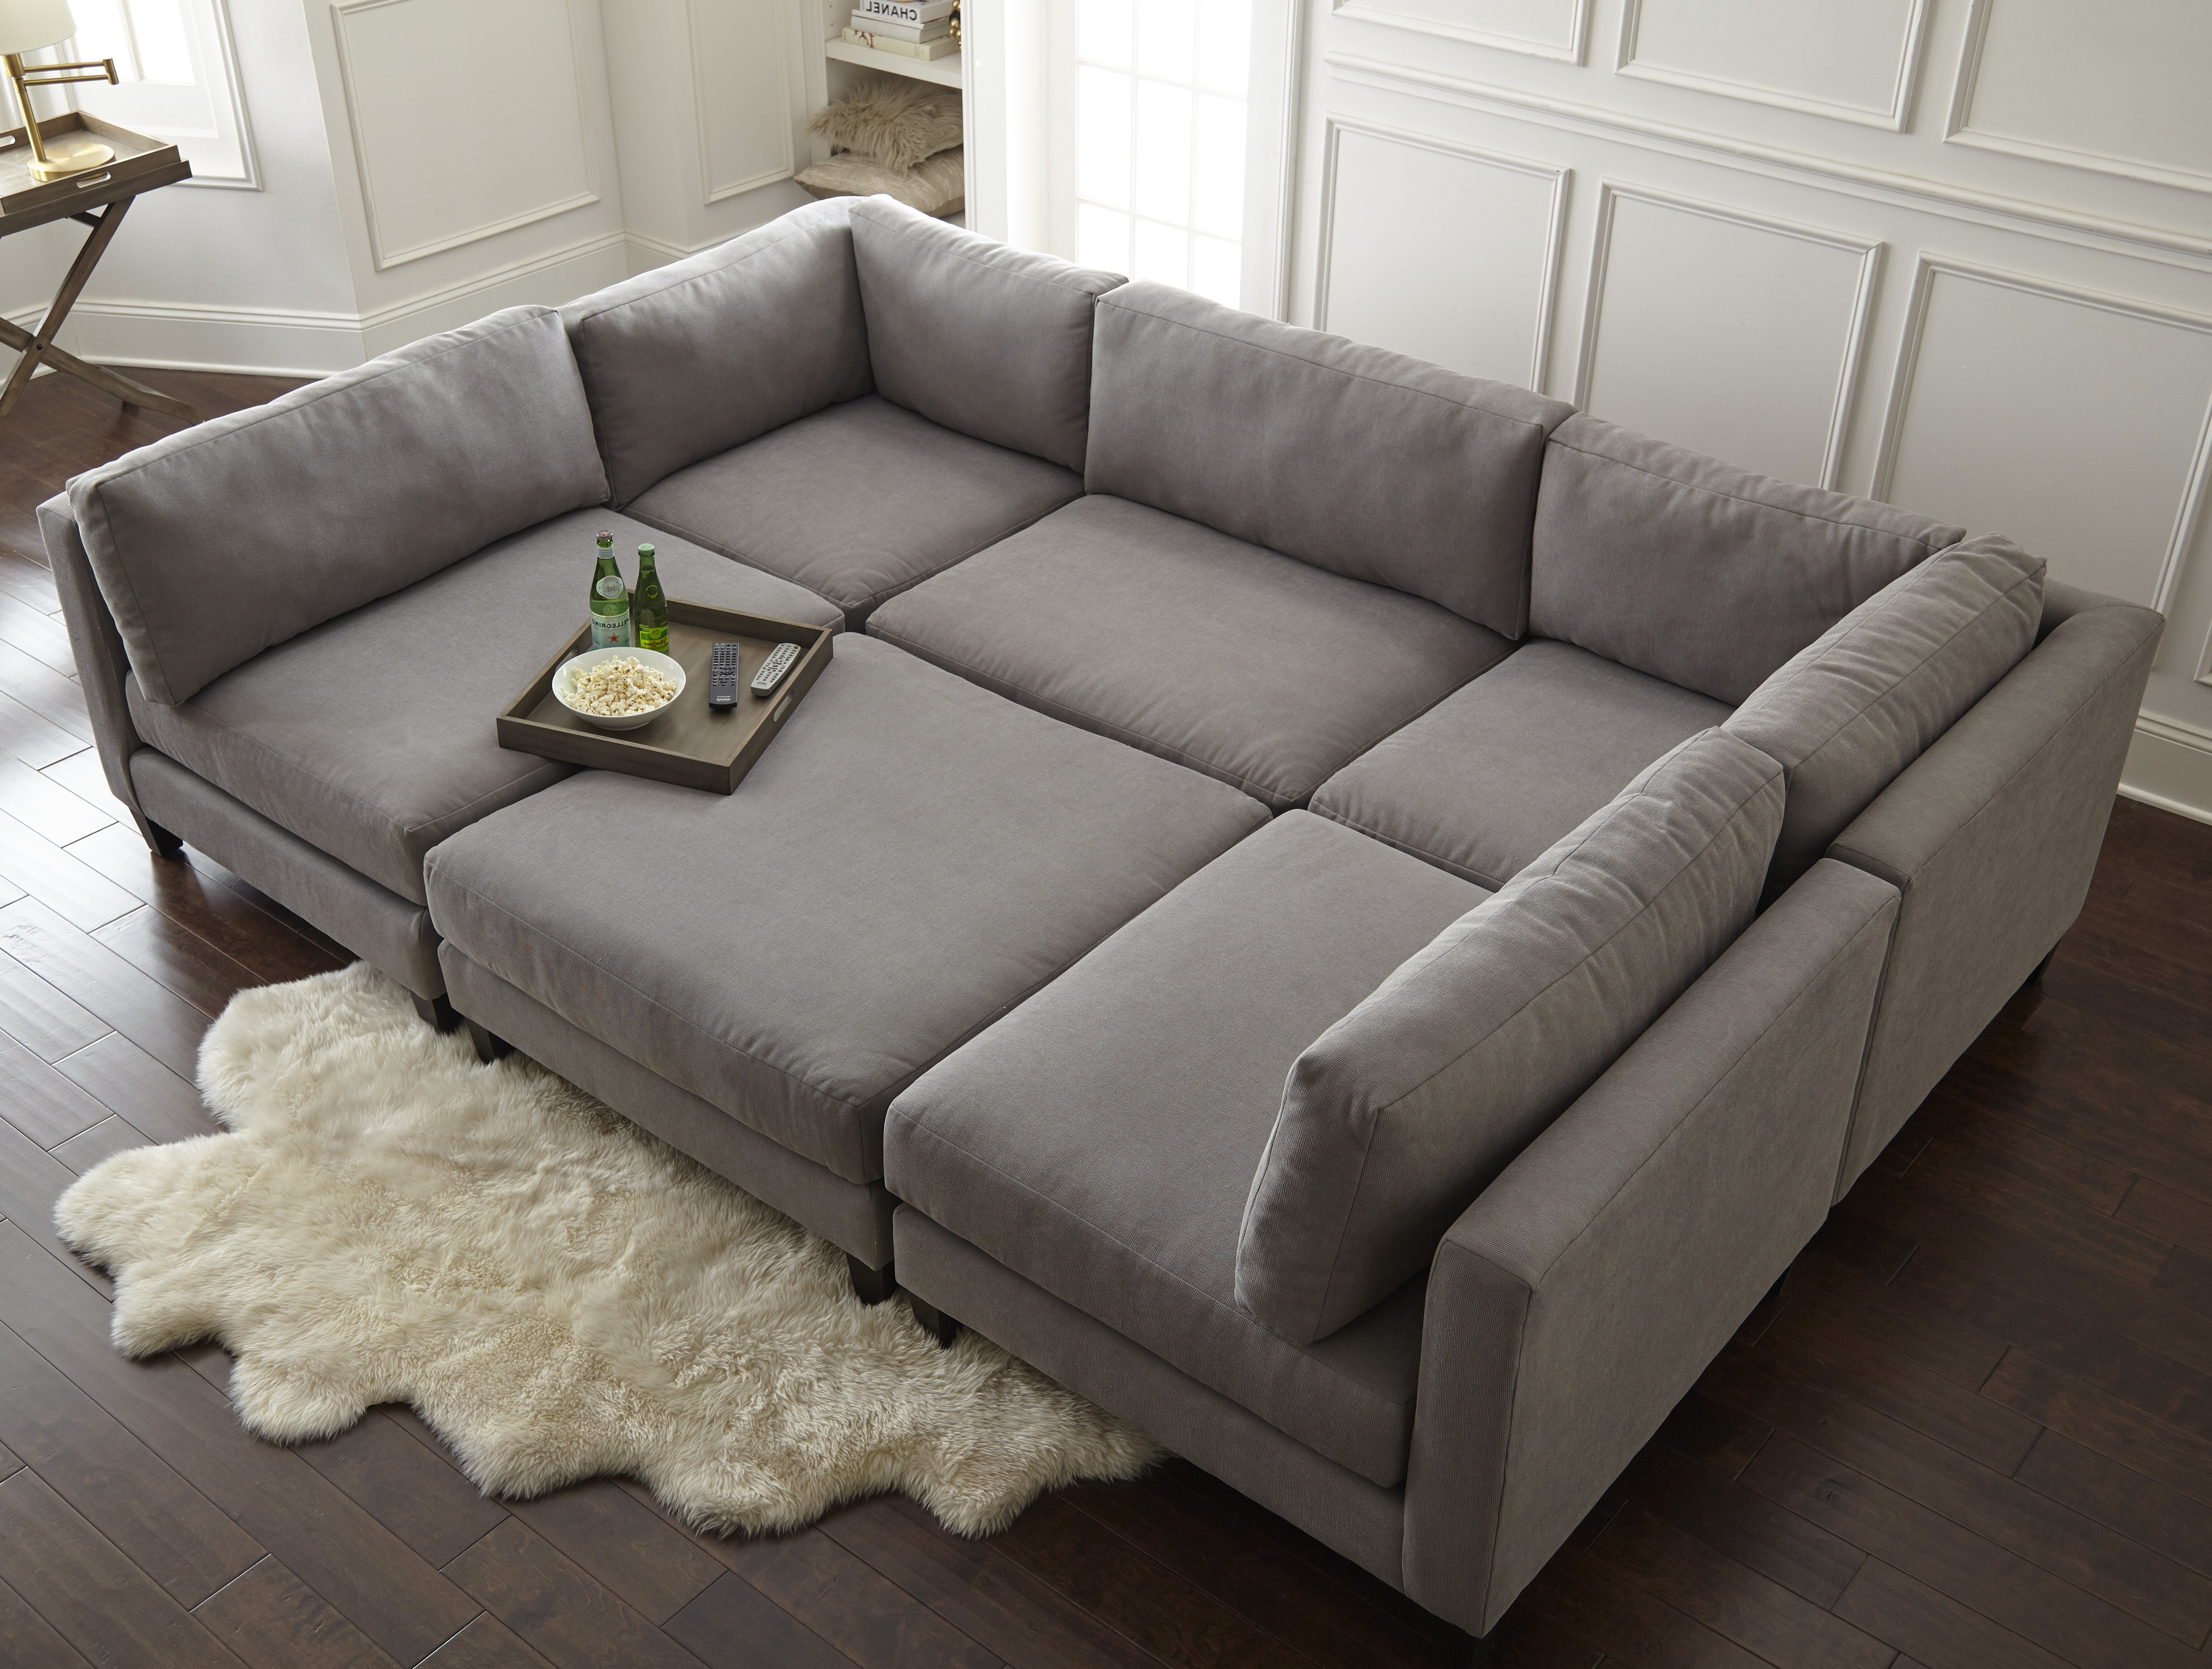 Wayfair Inside 2019 Individual Piece Sectional Sofas (View 19 of 20)